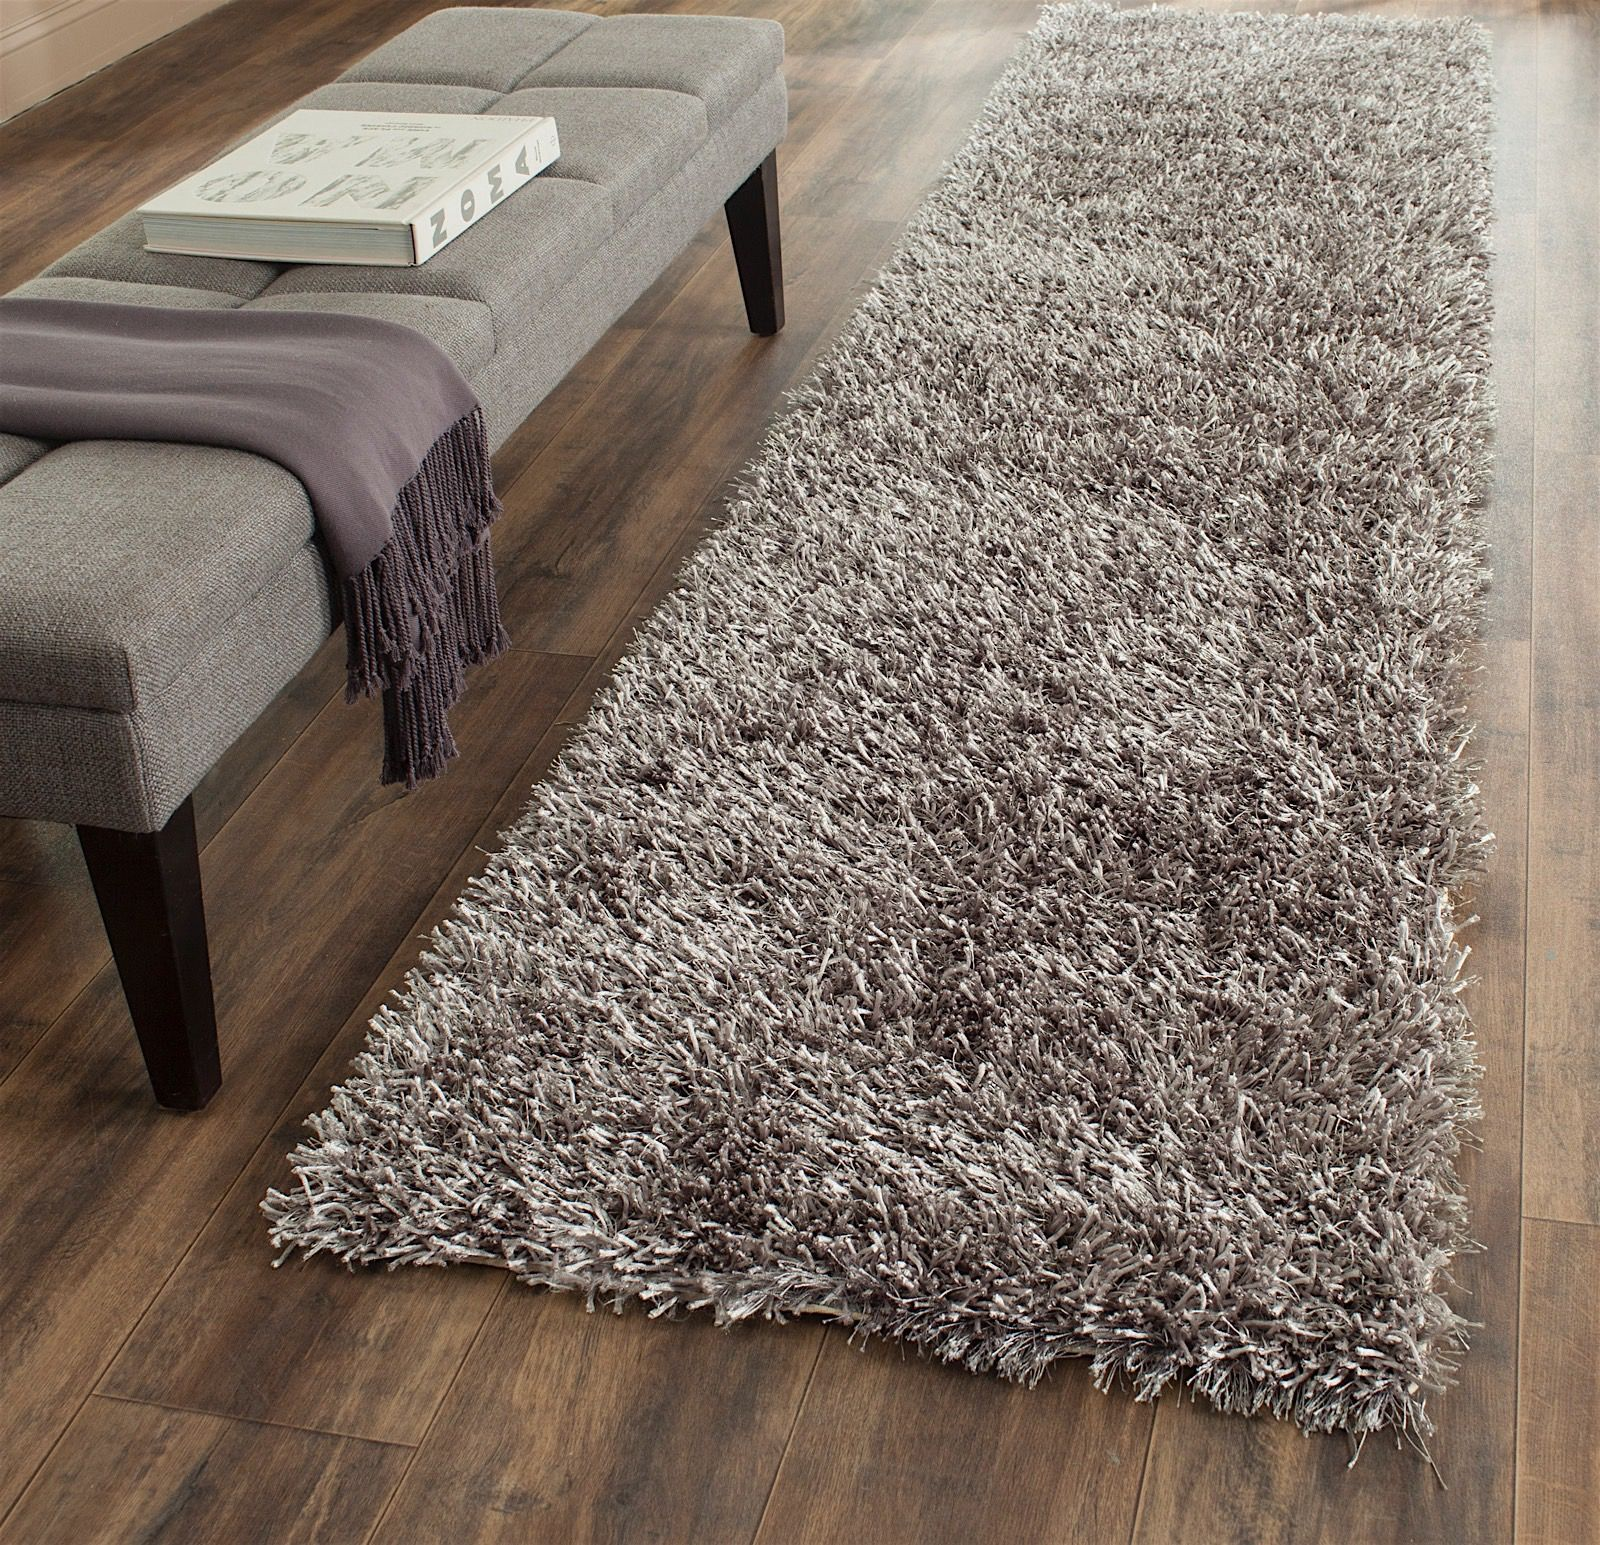 Safavieh Paris Shag Shag Area Rug Collection Rugpal Com